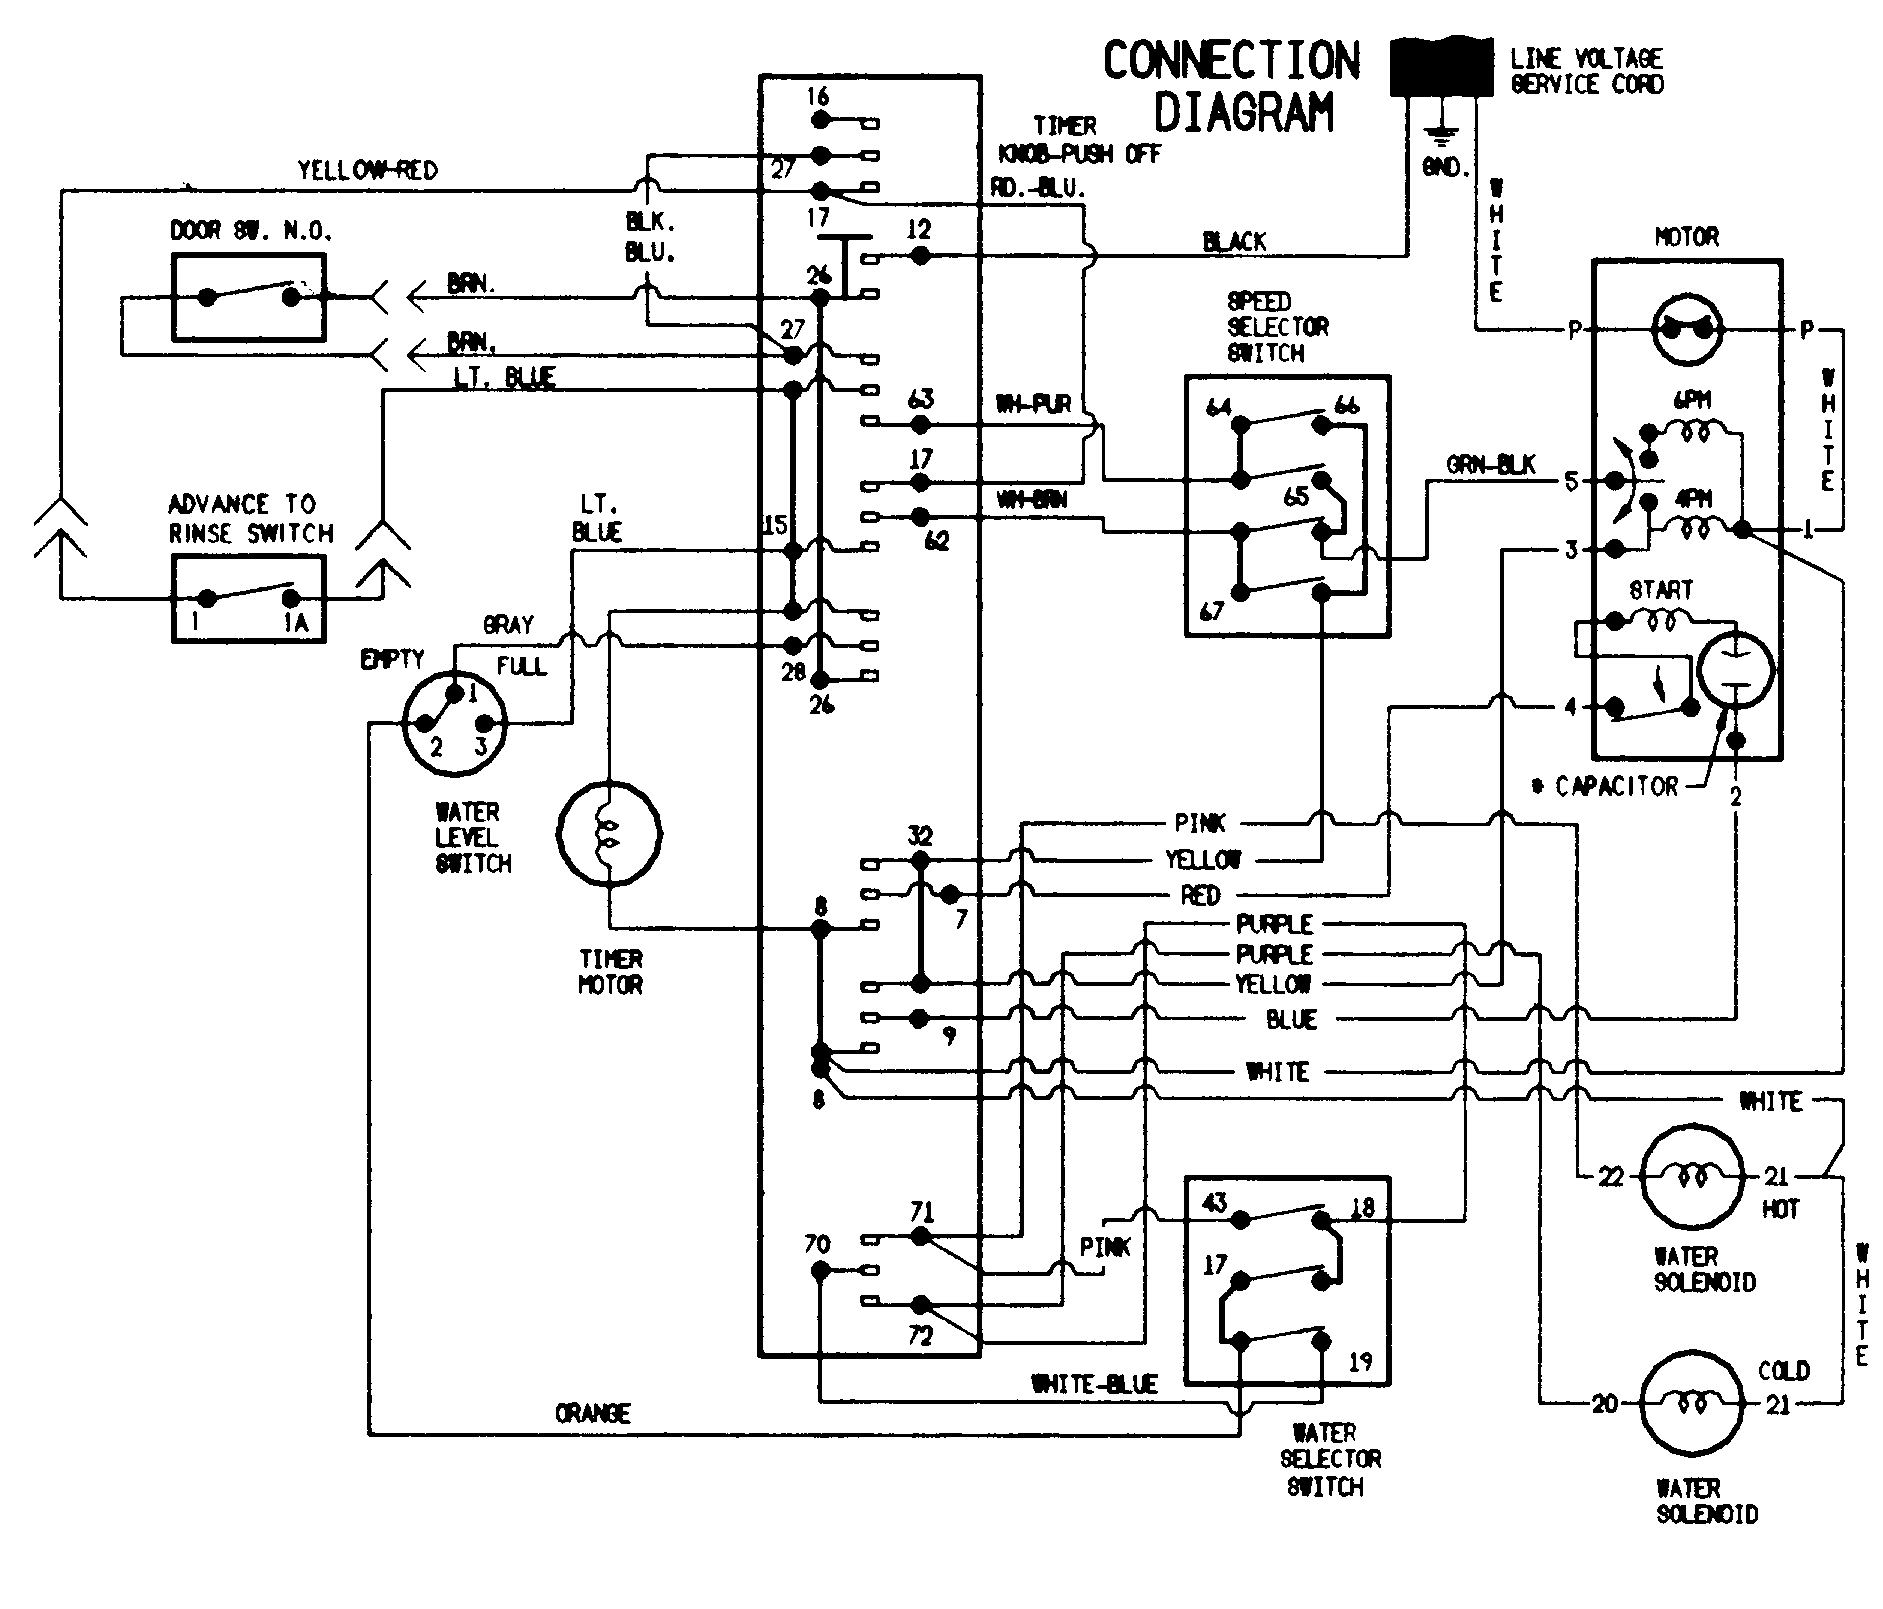 Heater Element Wiring Diagram